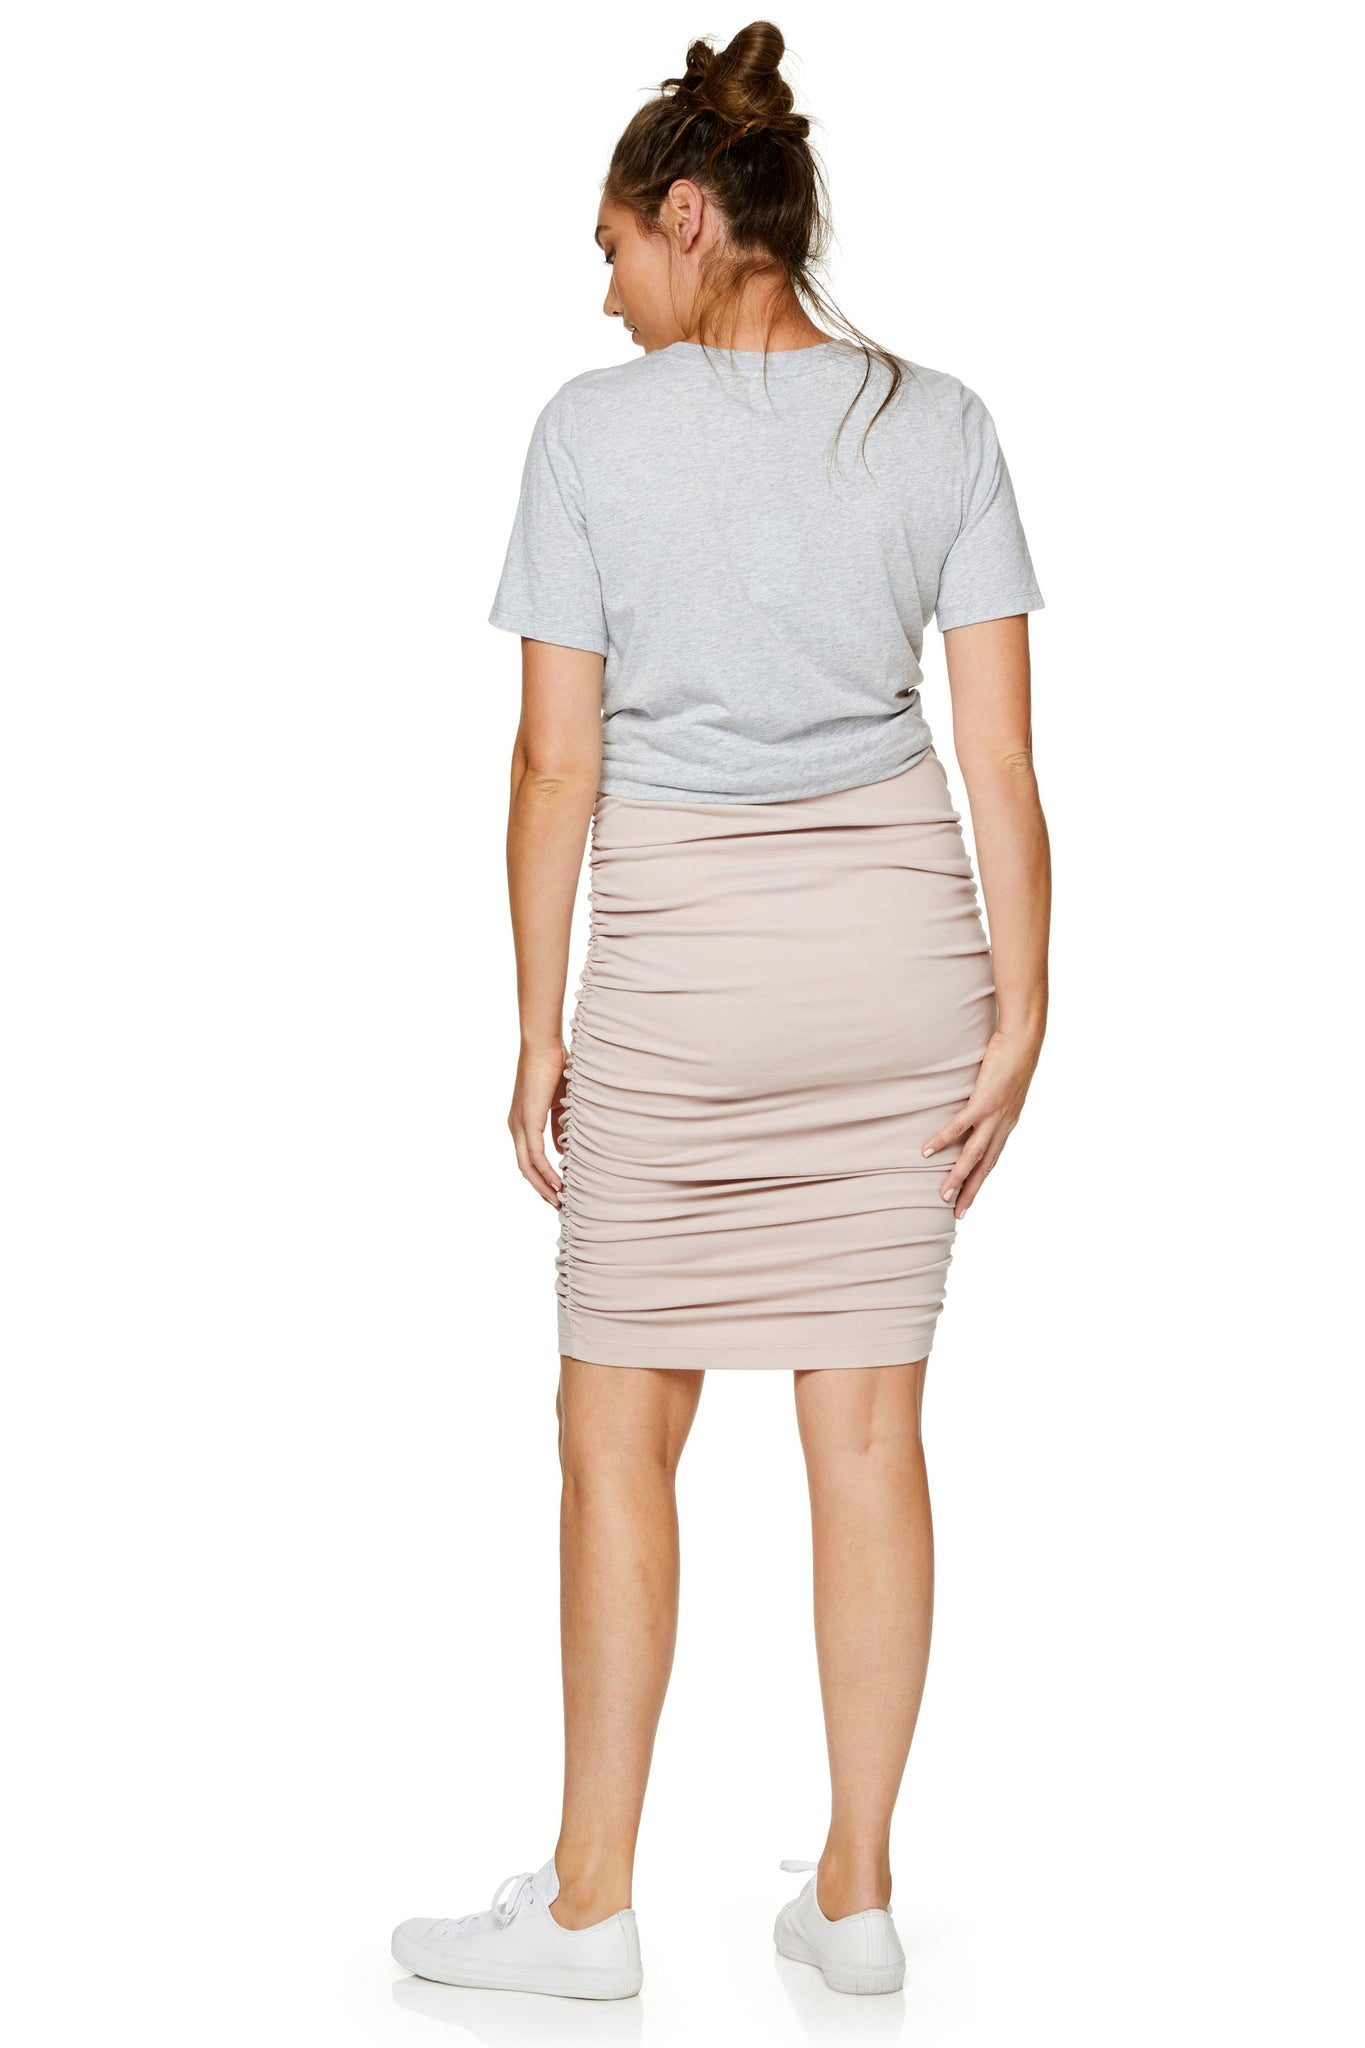 Ruched Maternity Skirt - Pink 8